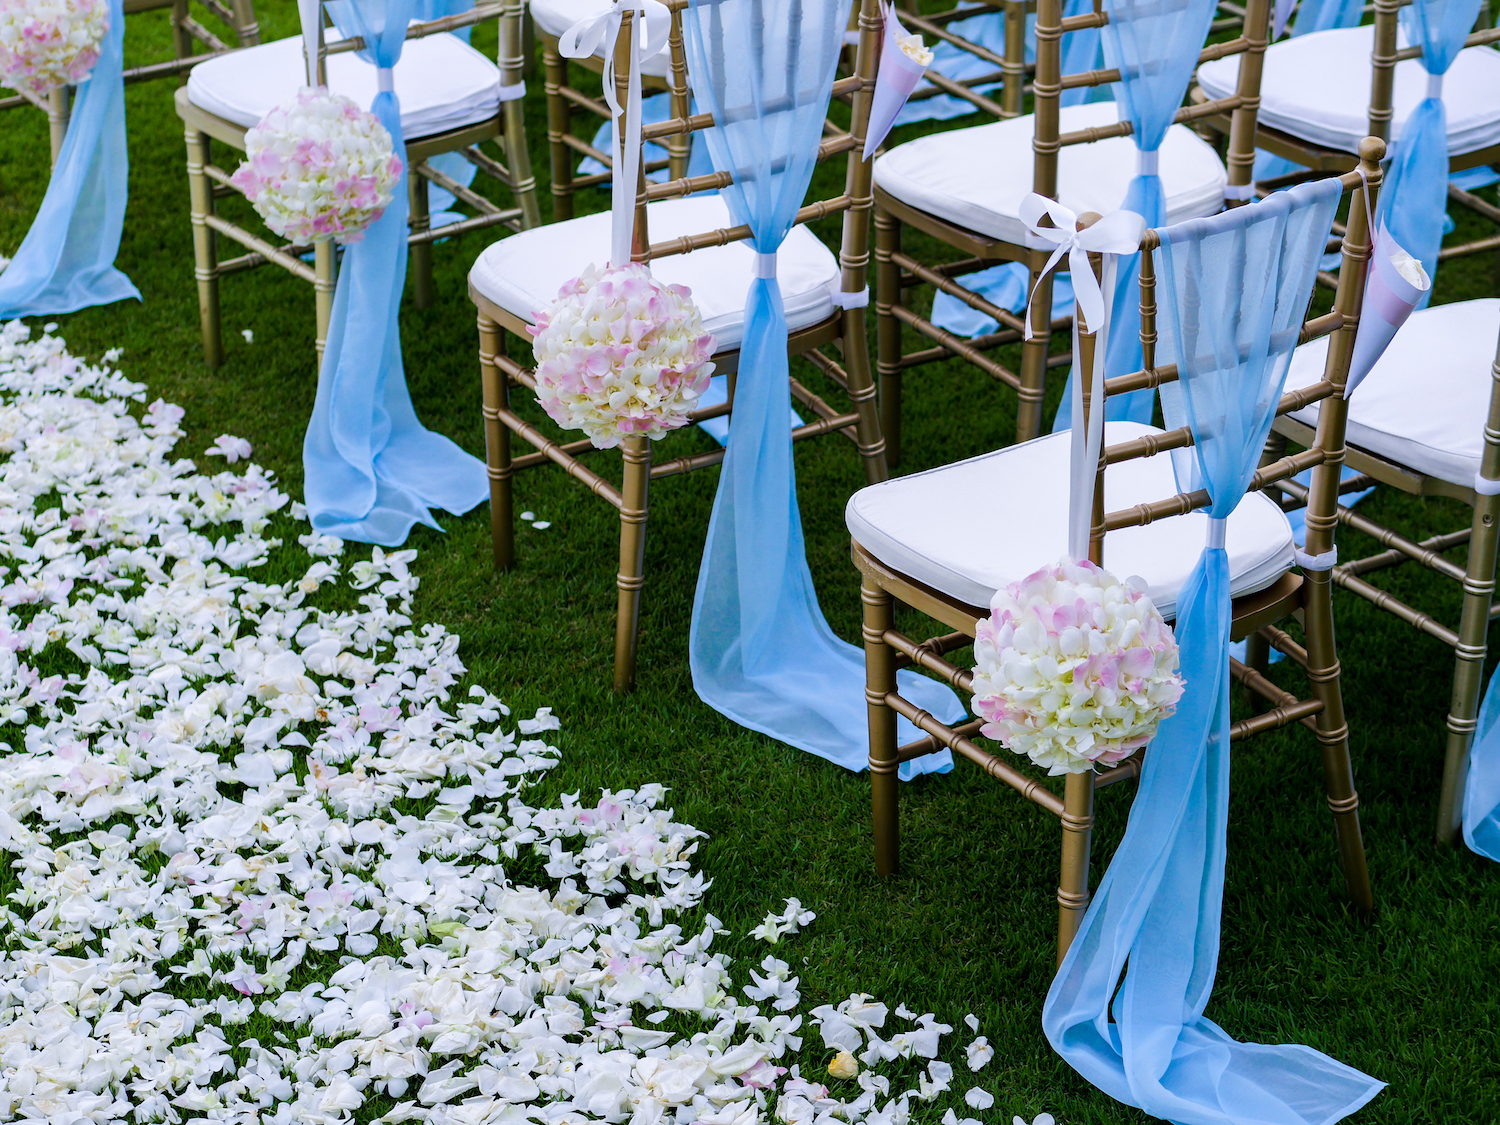 Woman Pulls Up To A Party, Only To Find Out It's Her Own Surprise Wedding